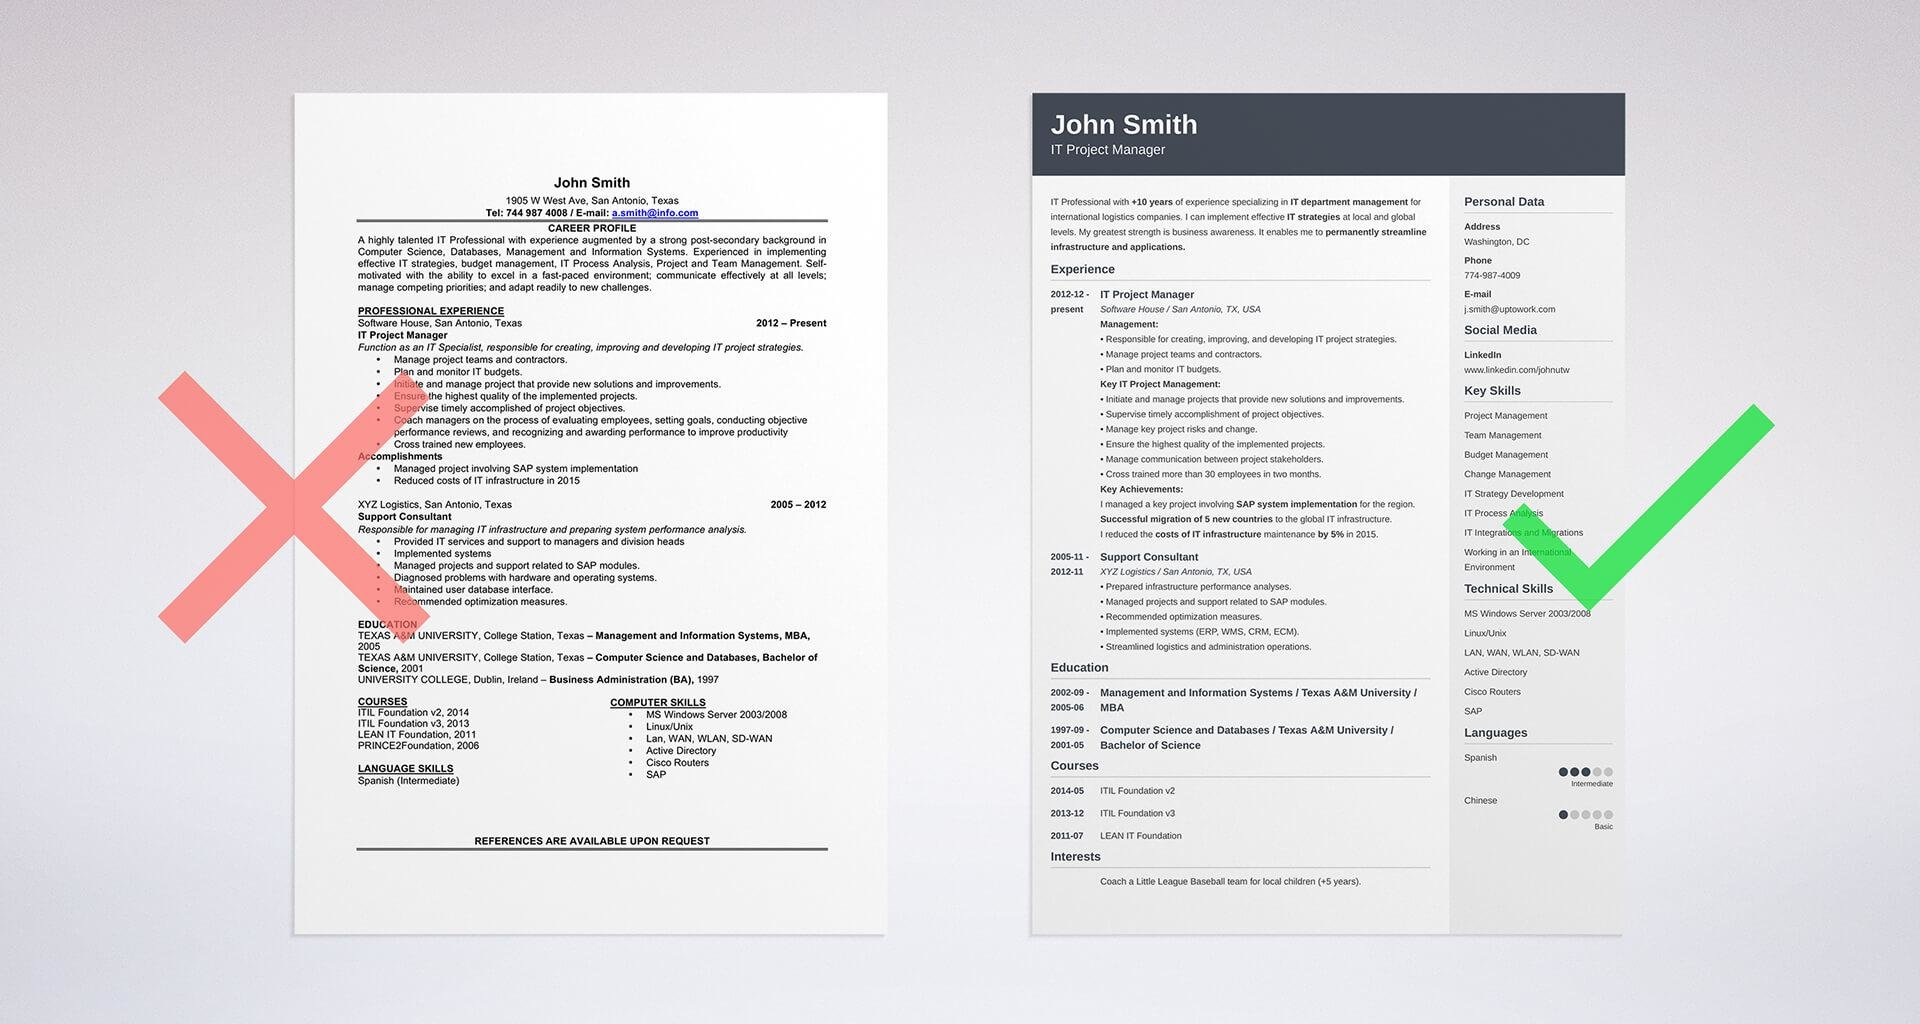 Marvelous How To Put Education On A Resume Inside Resume For Education